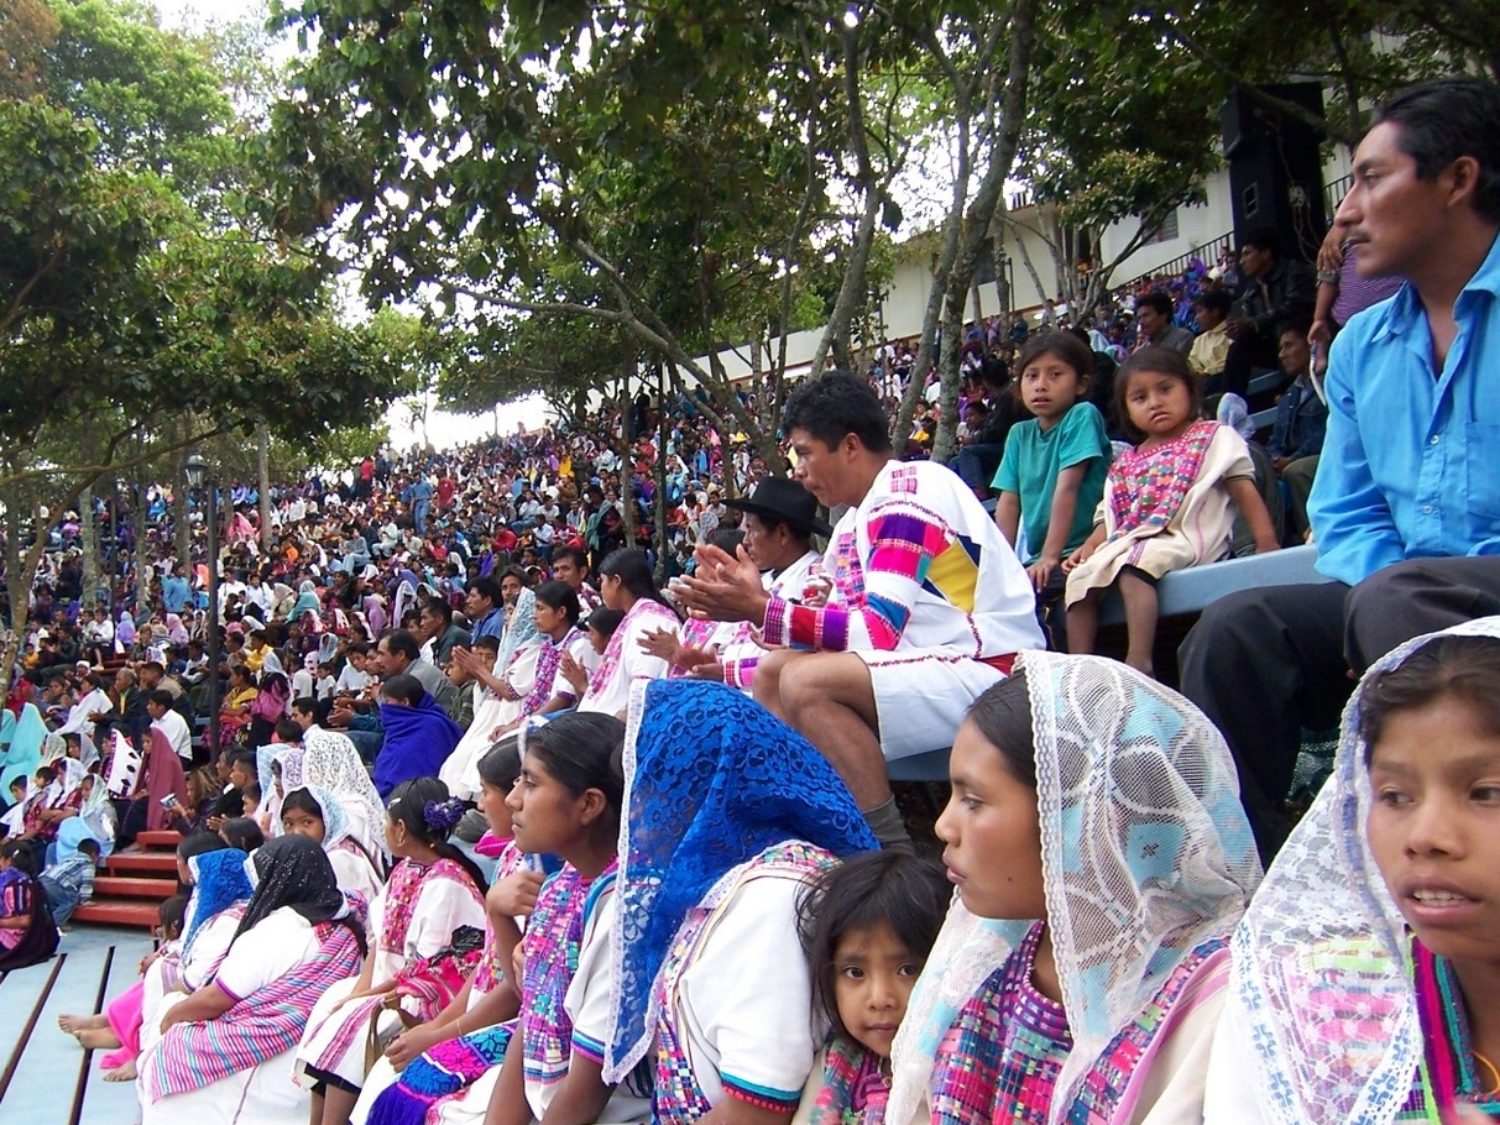 Thousands of believers gather at the outdoor stadium built by Mexico Ministries for ongoing conferences and worship services in Chiapas.